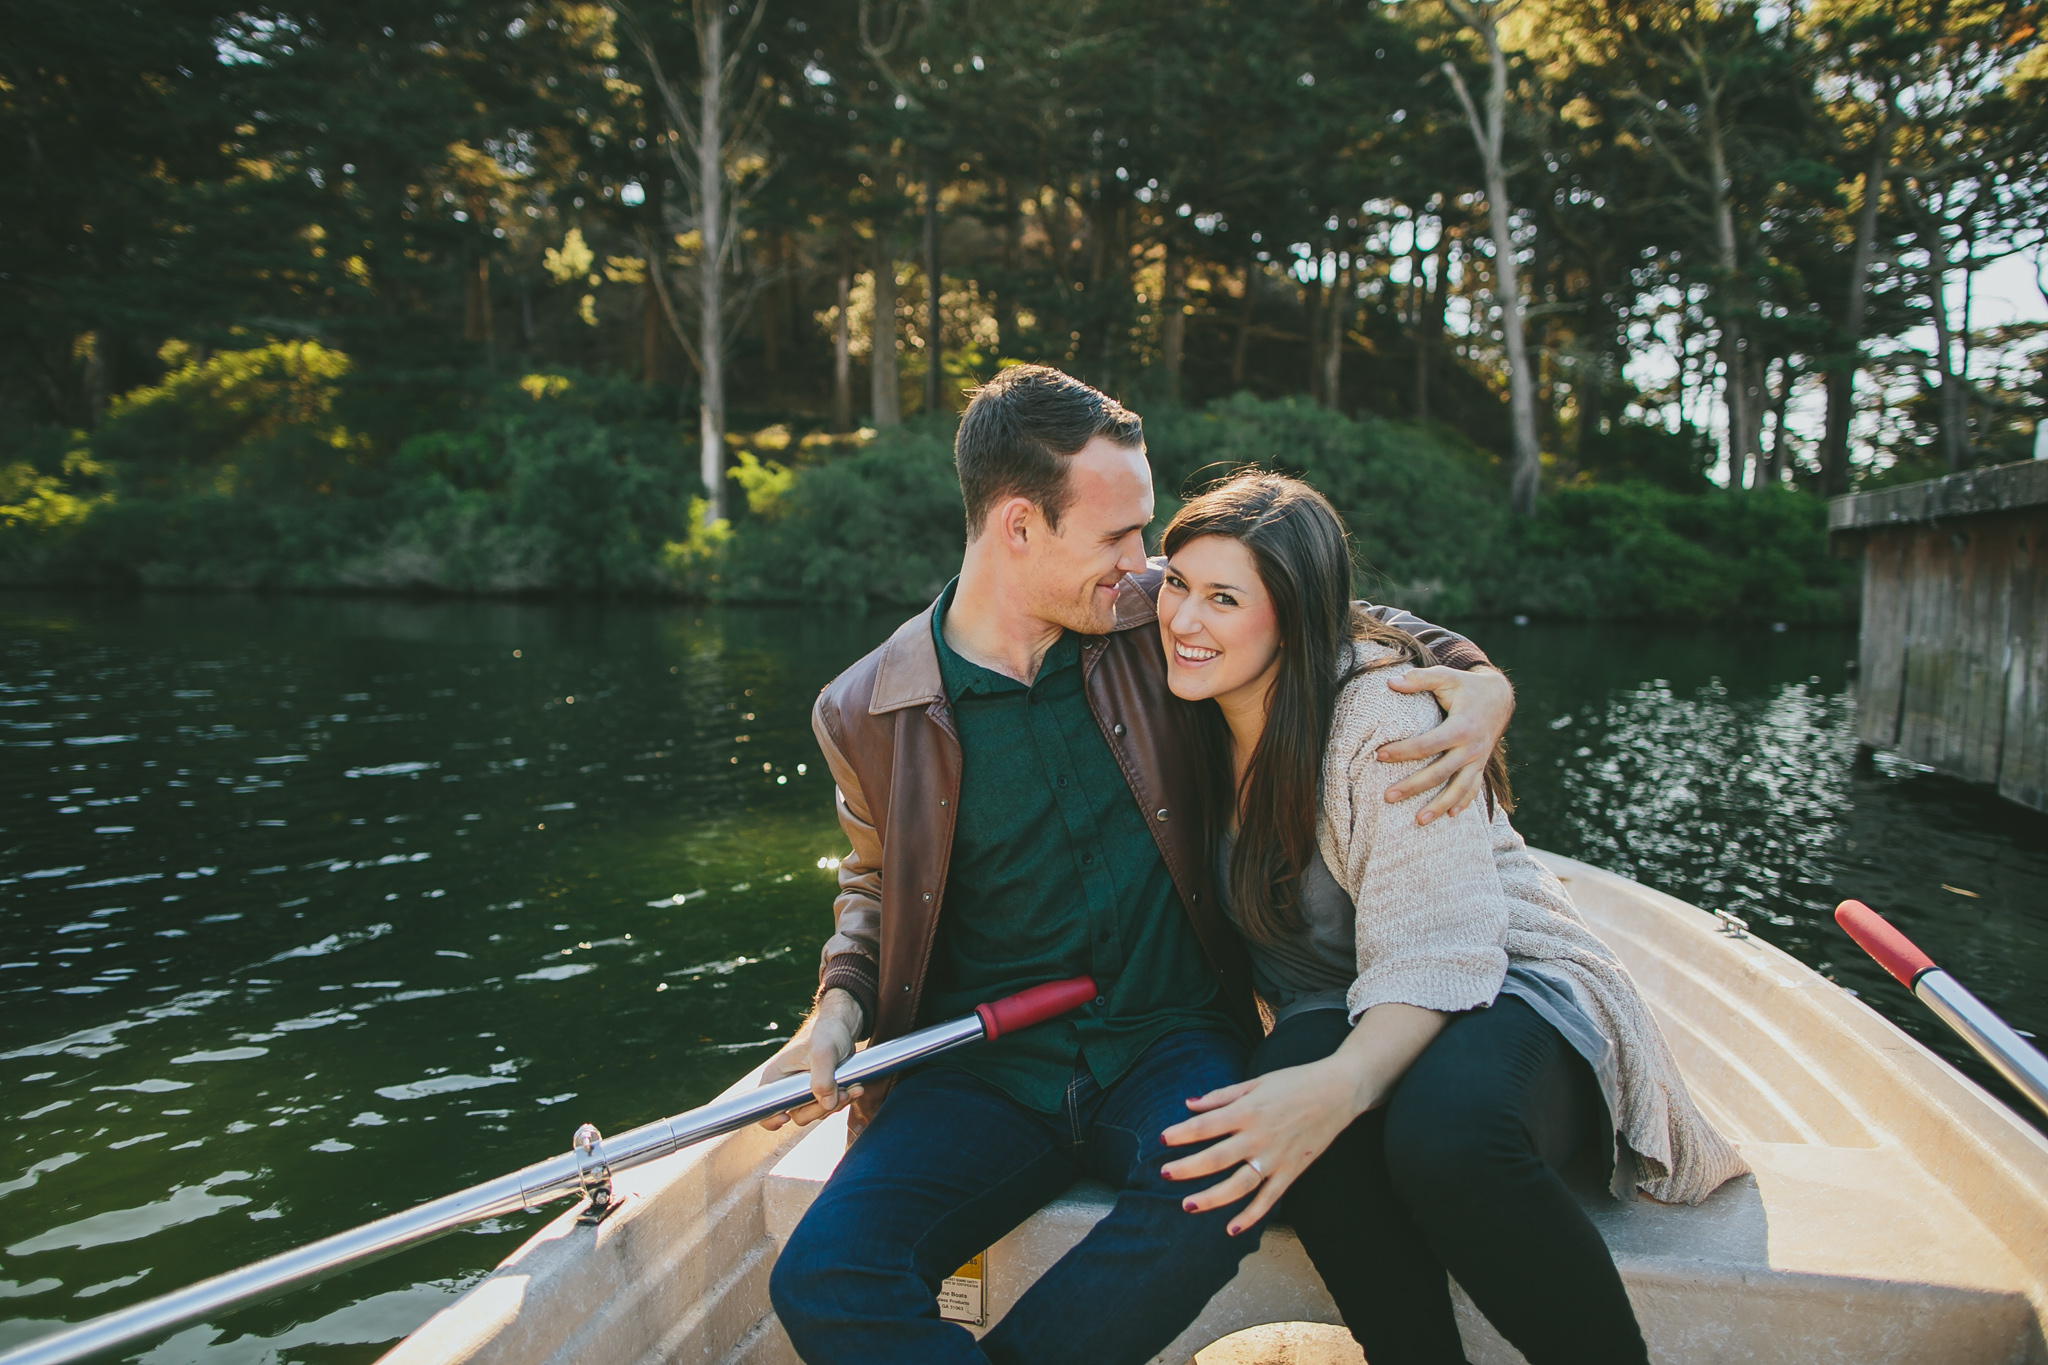 Sunee+Adam-Proposal-KellyBoitanoPhotography_WEB20151229_0044